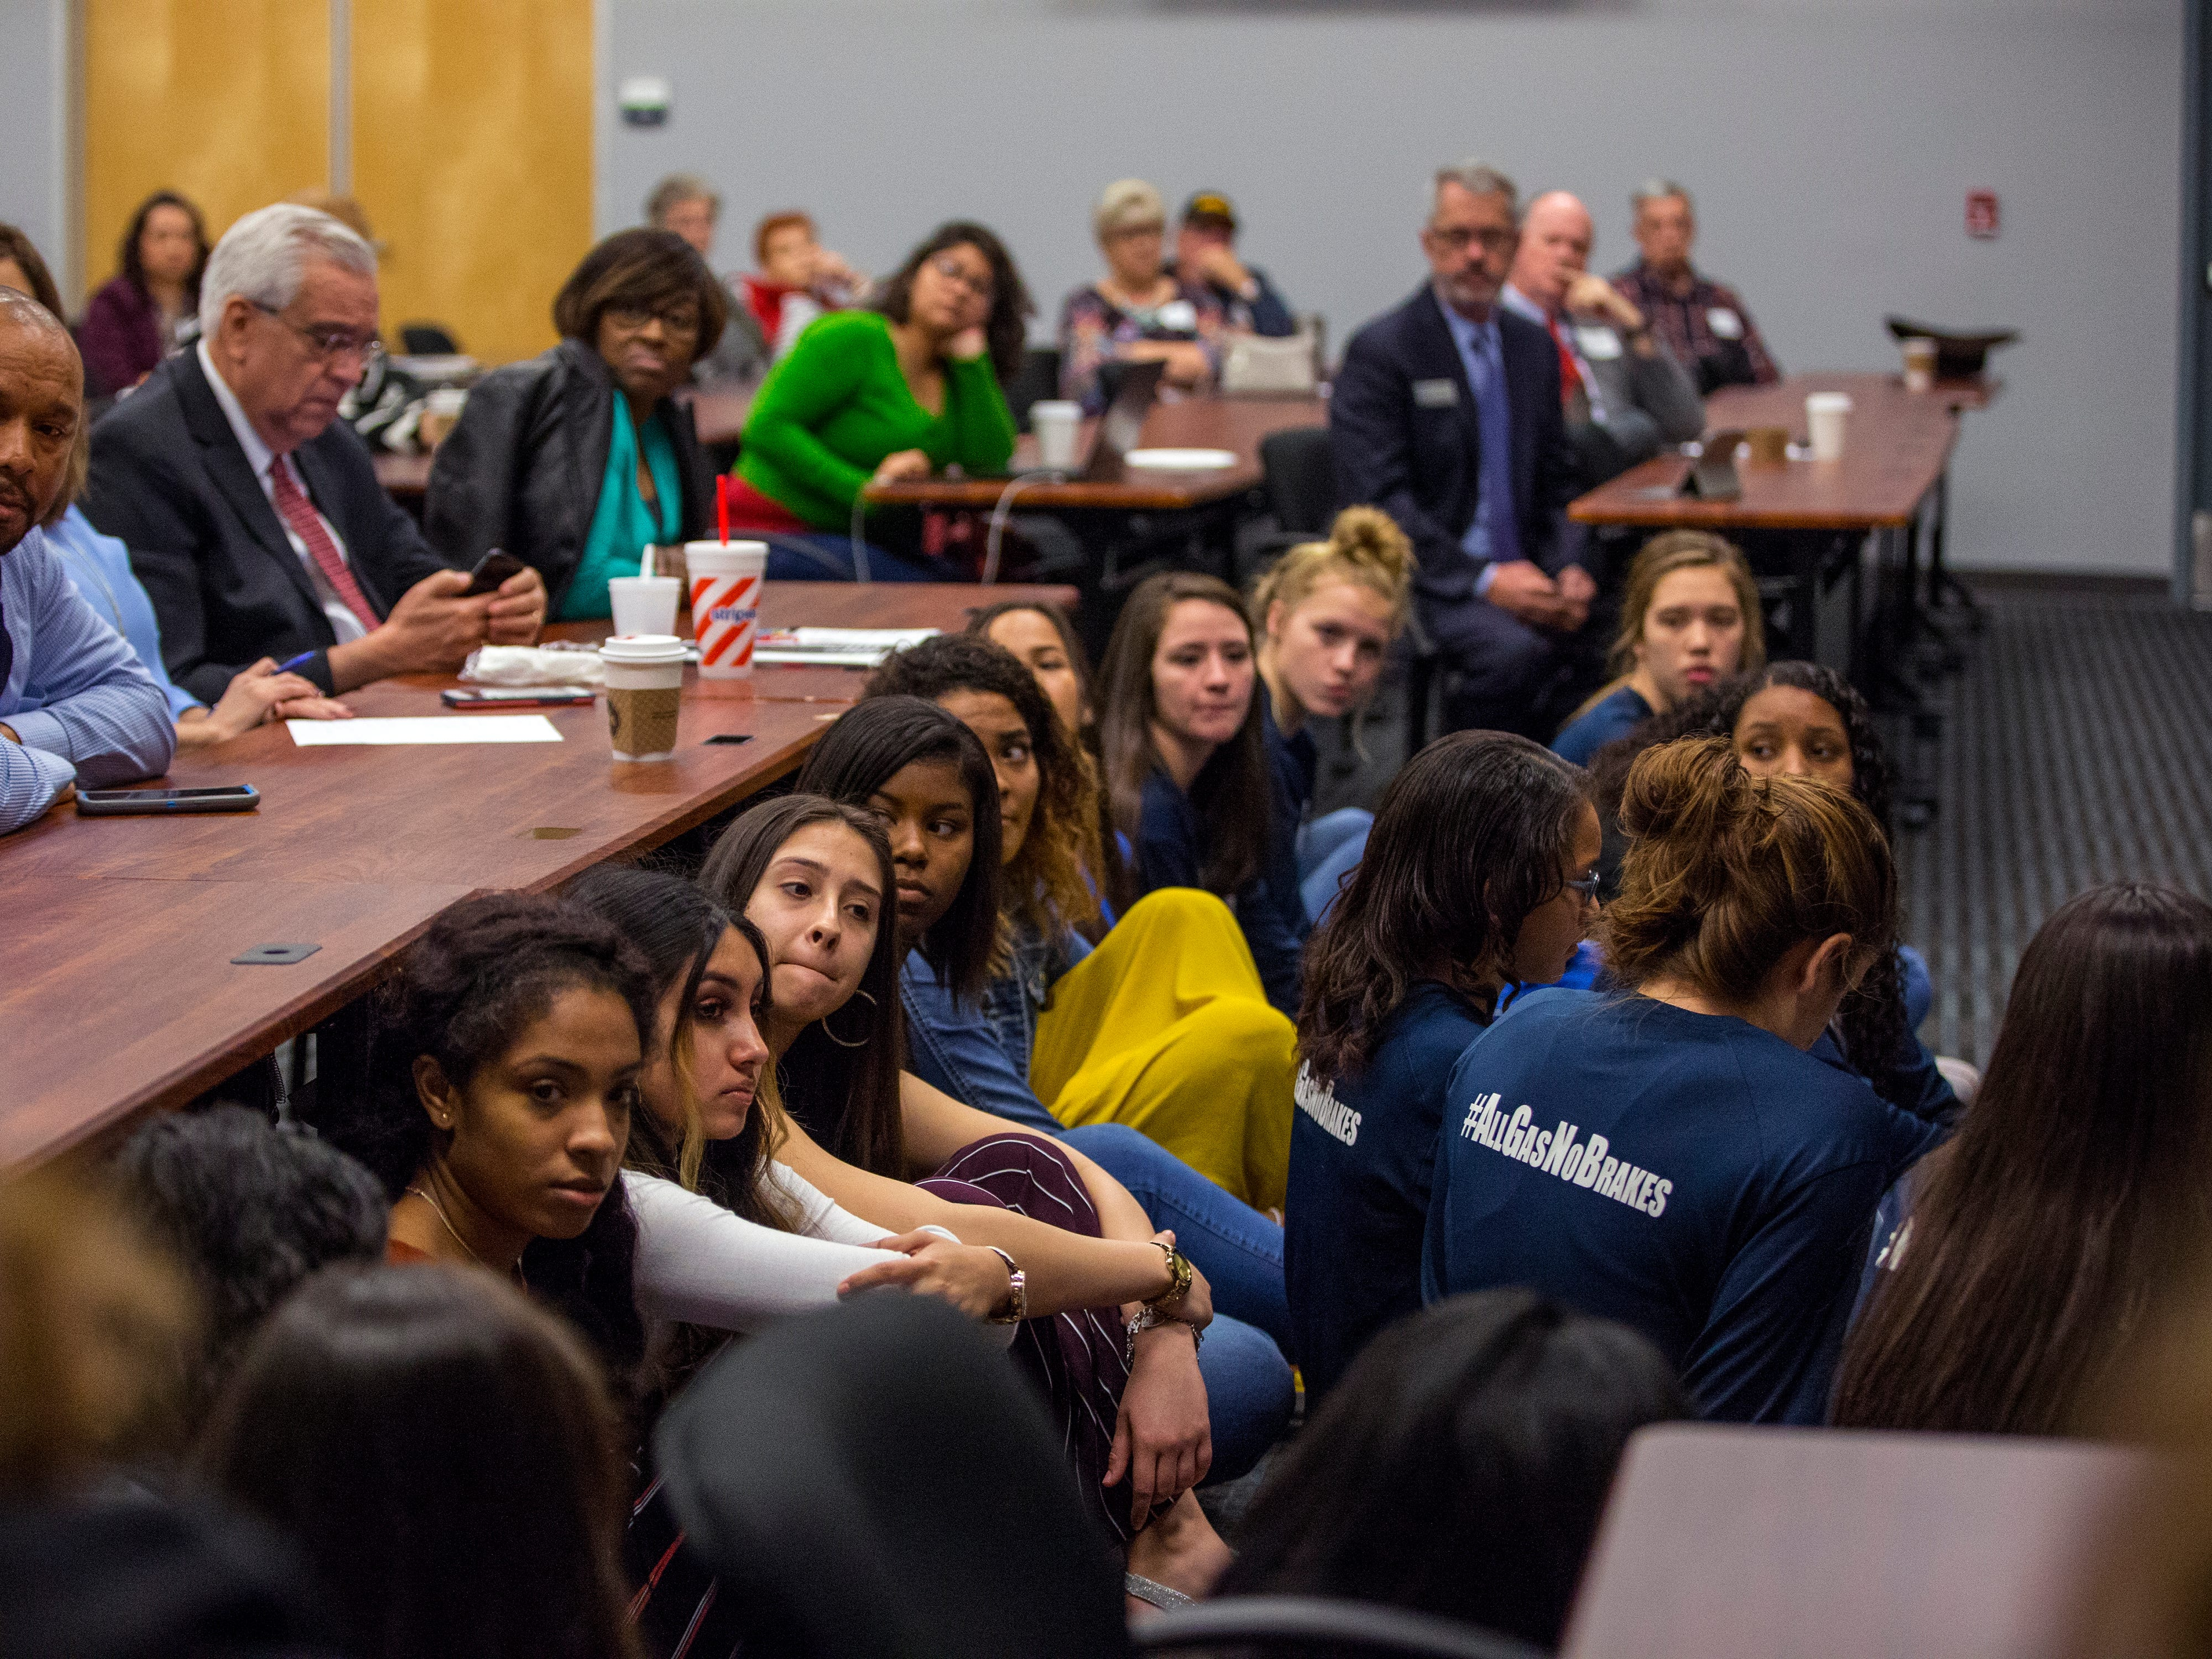 Students from Veterans Memorial and West Oso High Schools listen as fellow students participate in a panel on suicide prevention and schools at the Del Mar Center for Economic Development on Monday, December 17, 2018. The students provided a prospective on what changes could be made to help students.